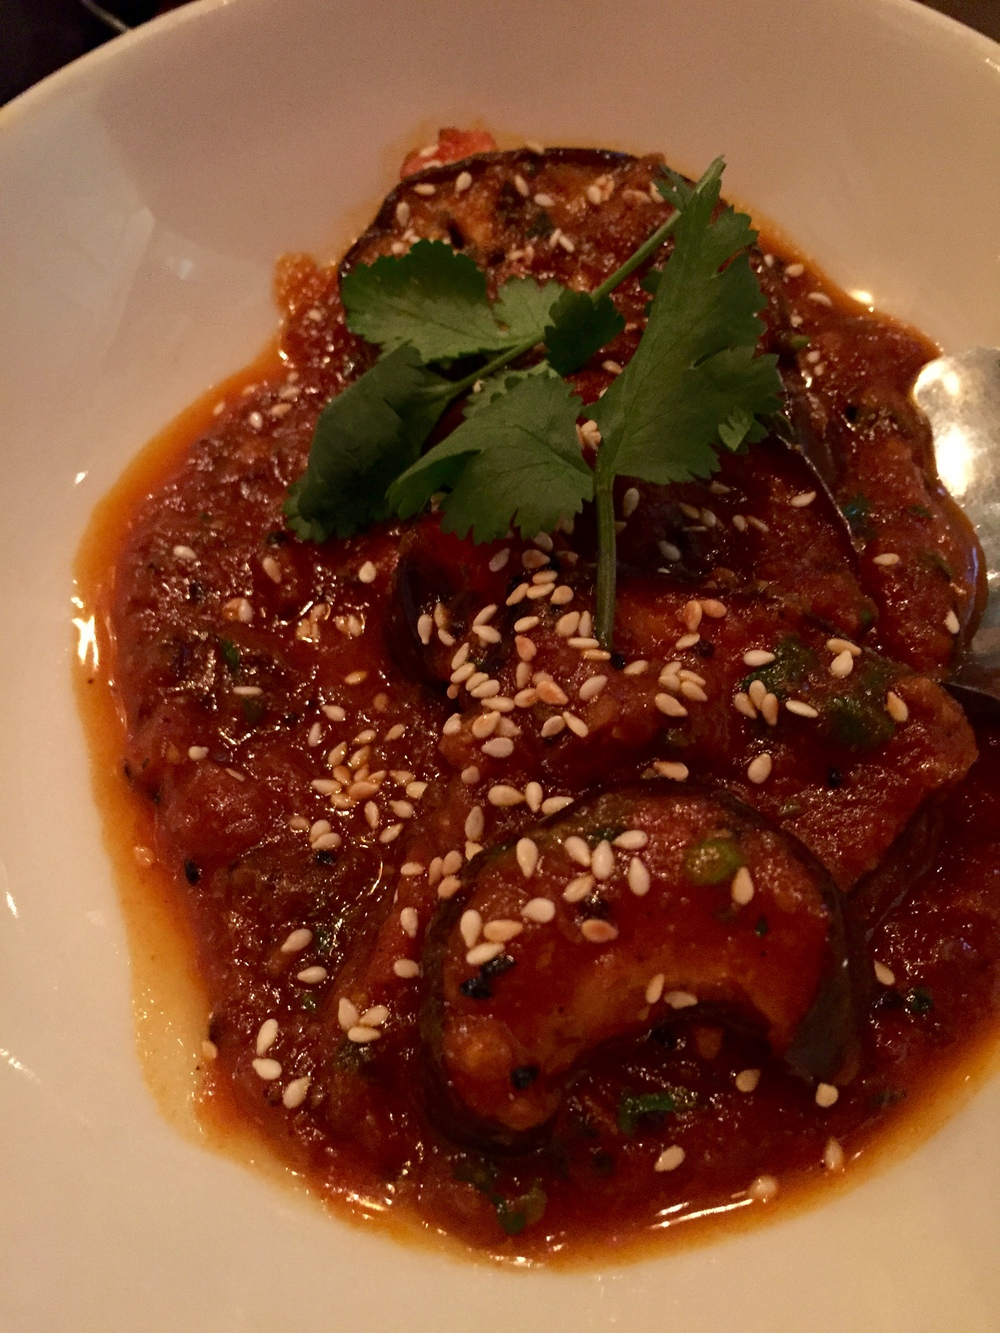 Eggplant Dish No. 3 - eggplant steaks with a tangy tomato & mustard seed sauce, finished with toasted sesame seeds.